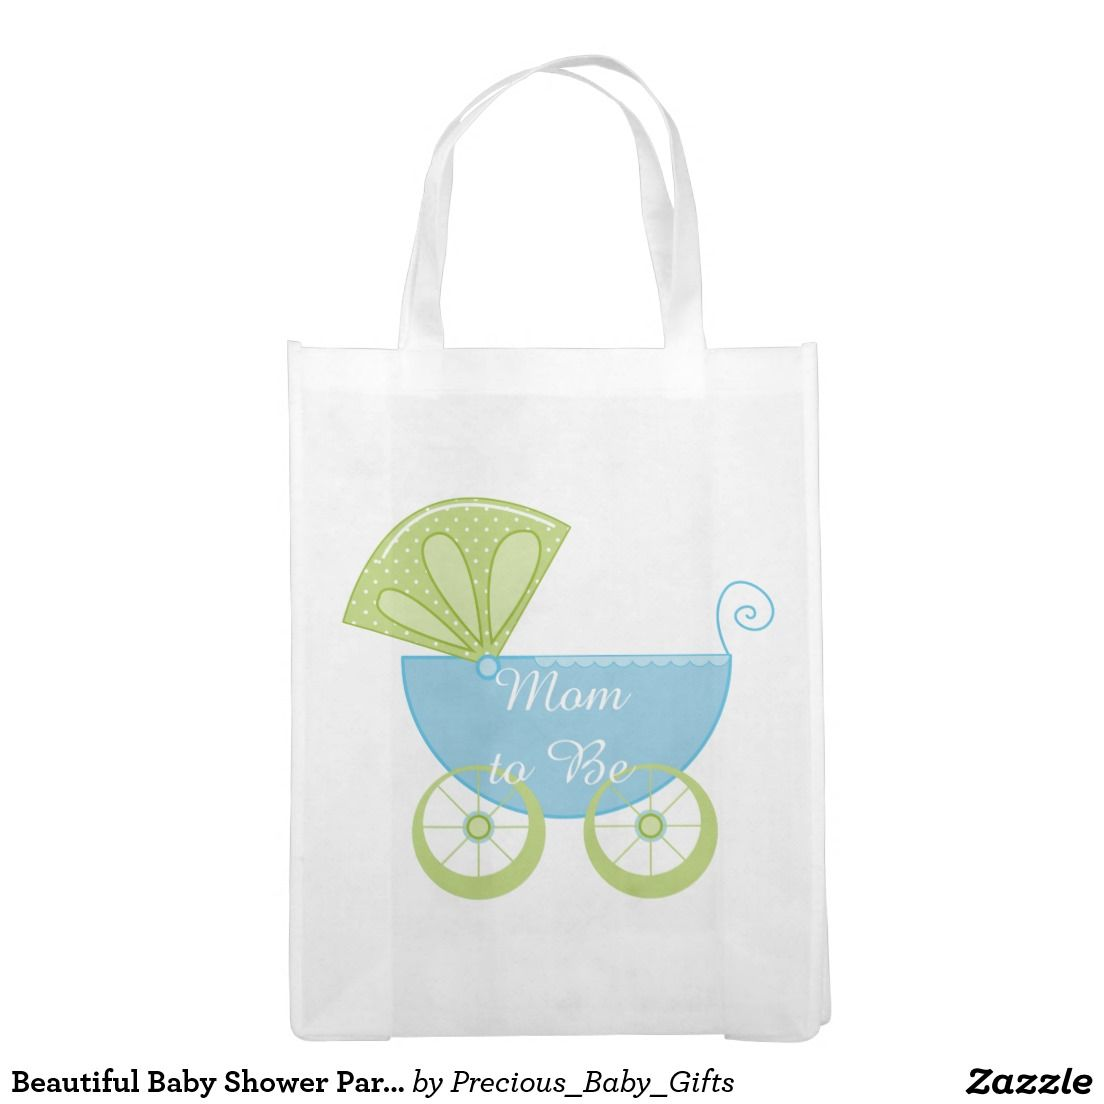 Beautiful Baby Shower Party Bag Grocery Bag